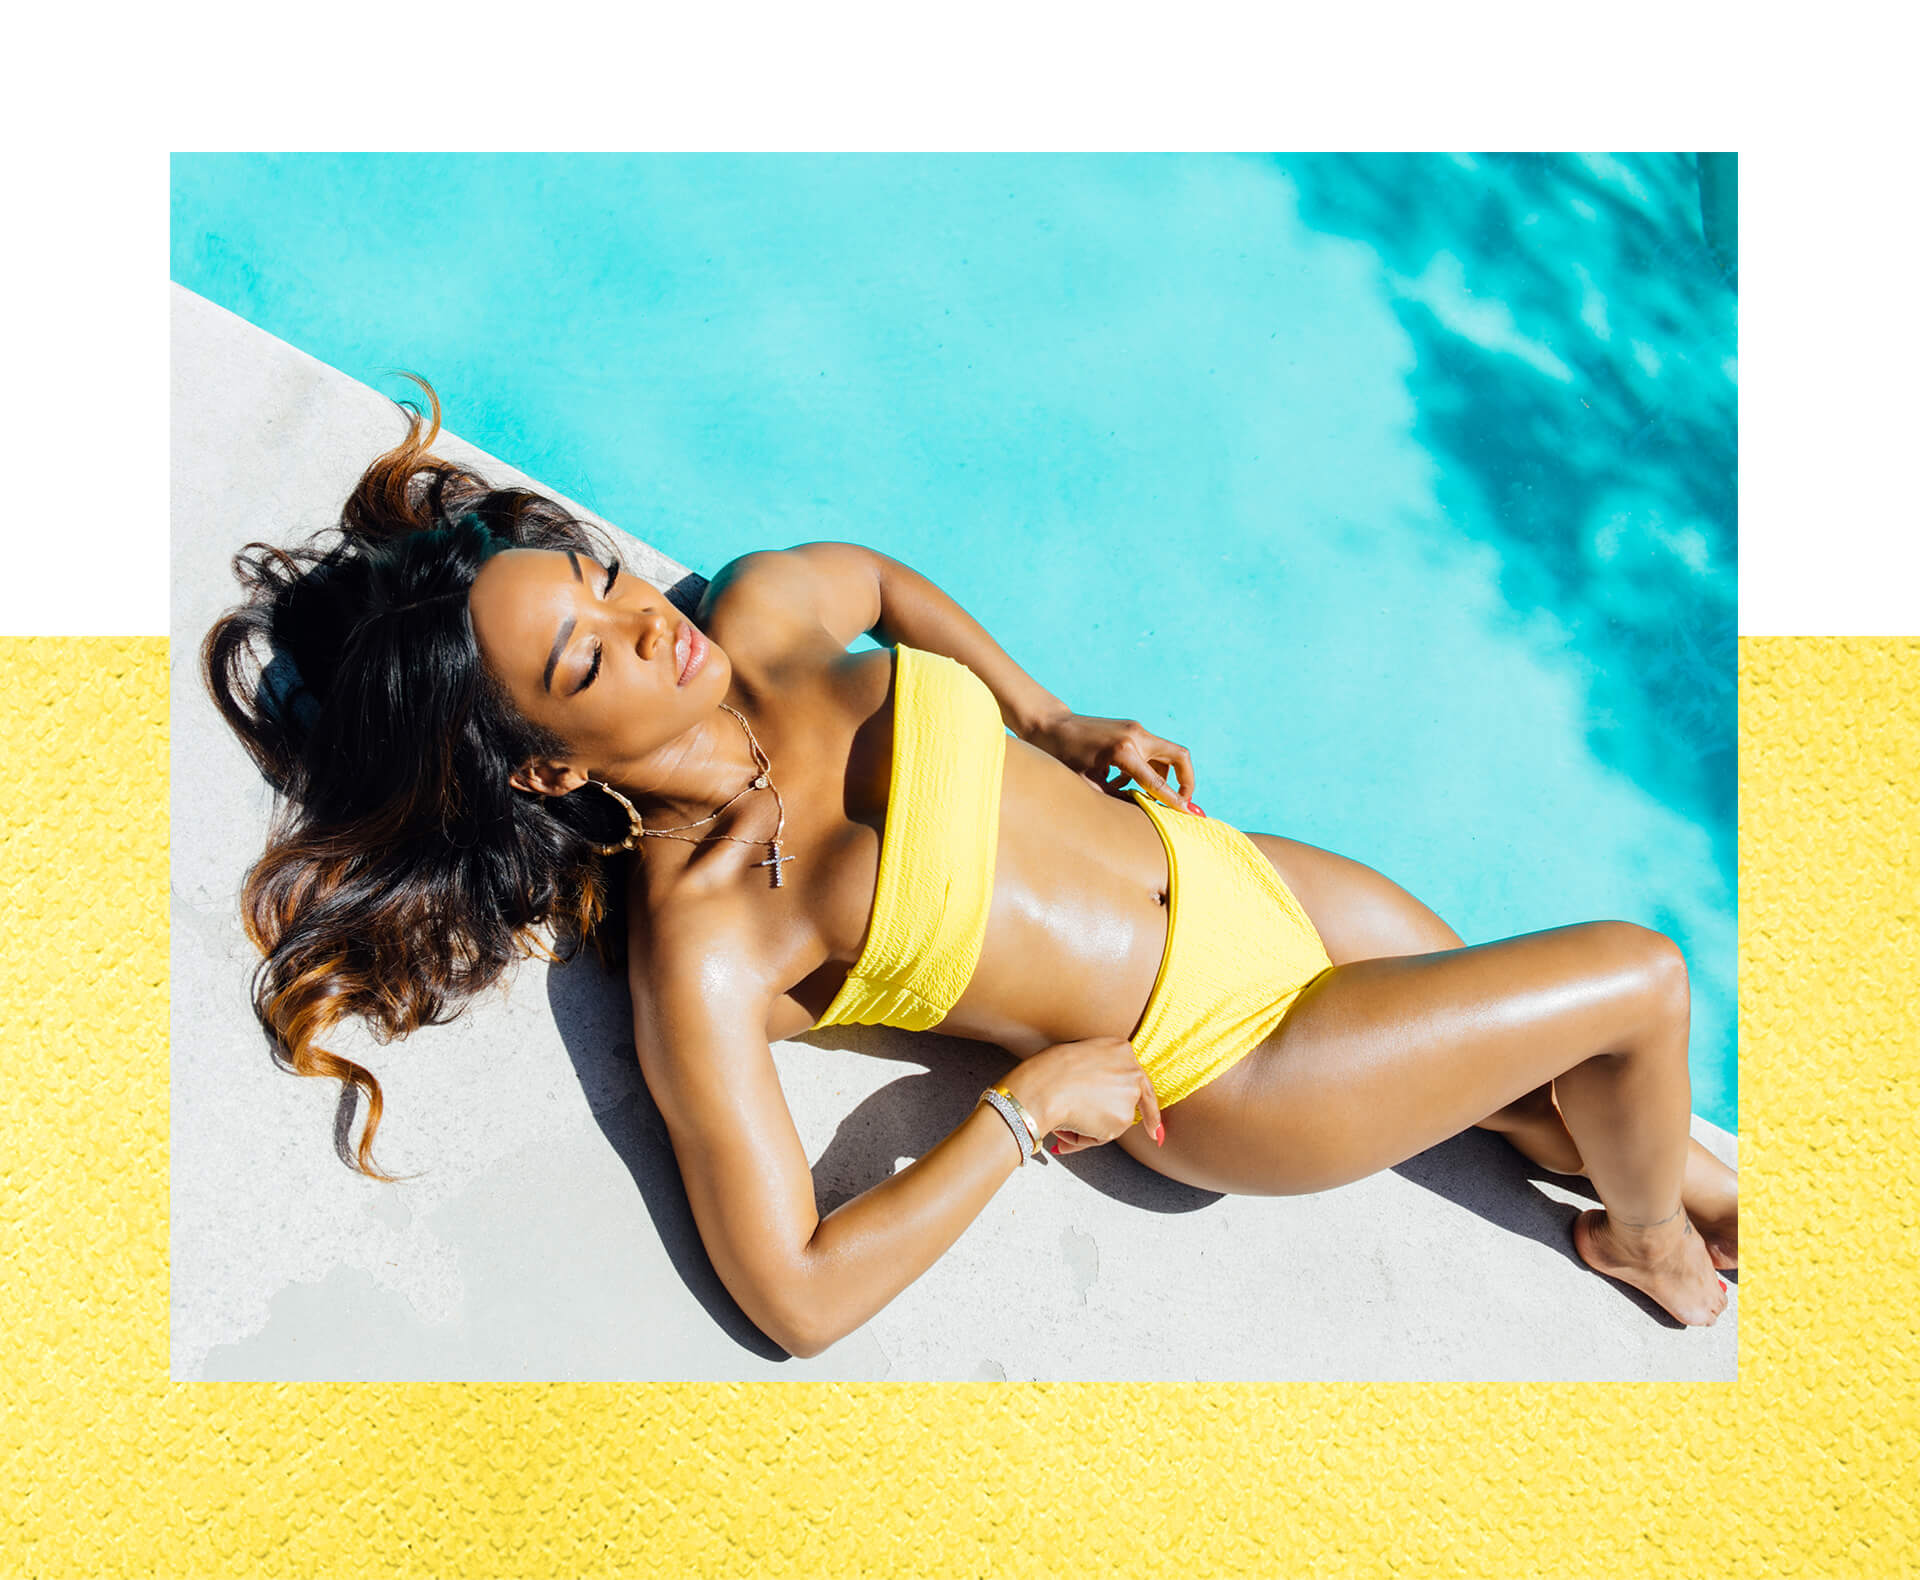 Malika haqq swimwear lookbook shoot 4 mobile